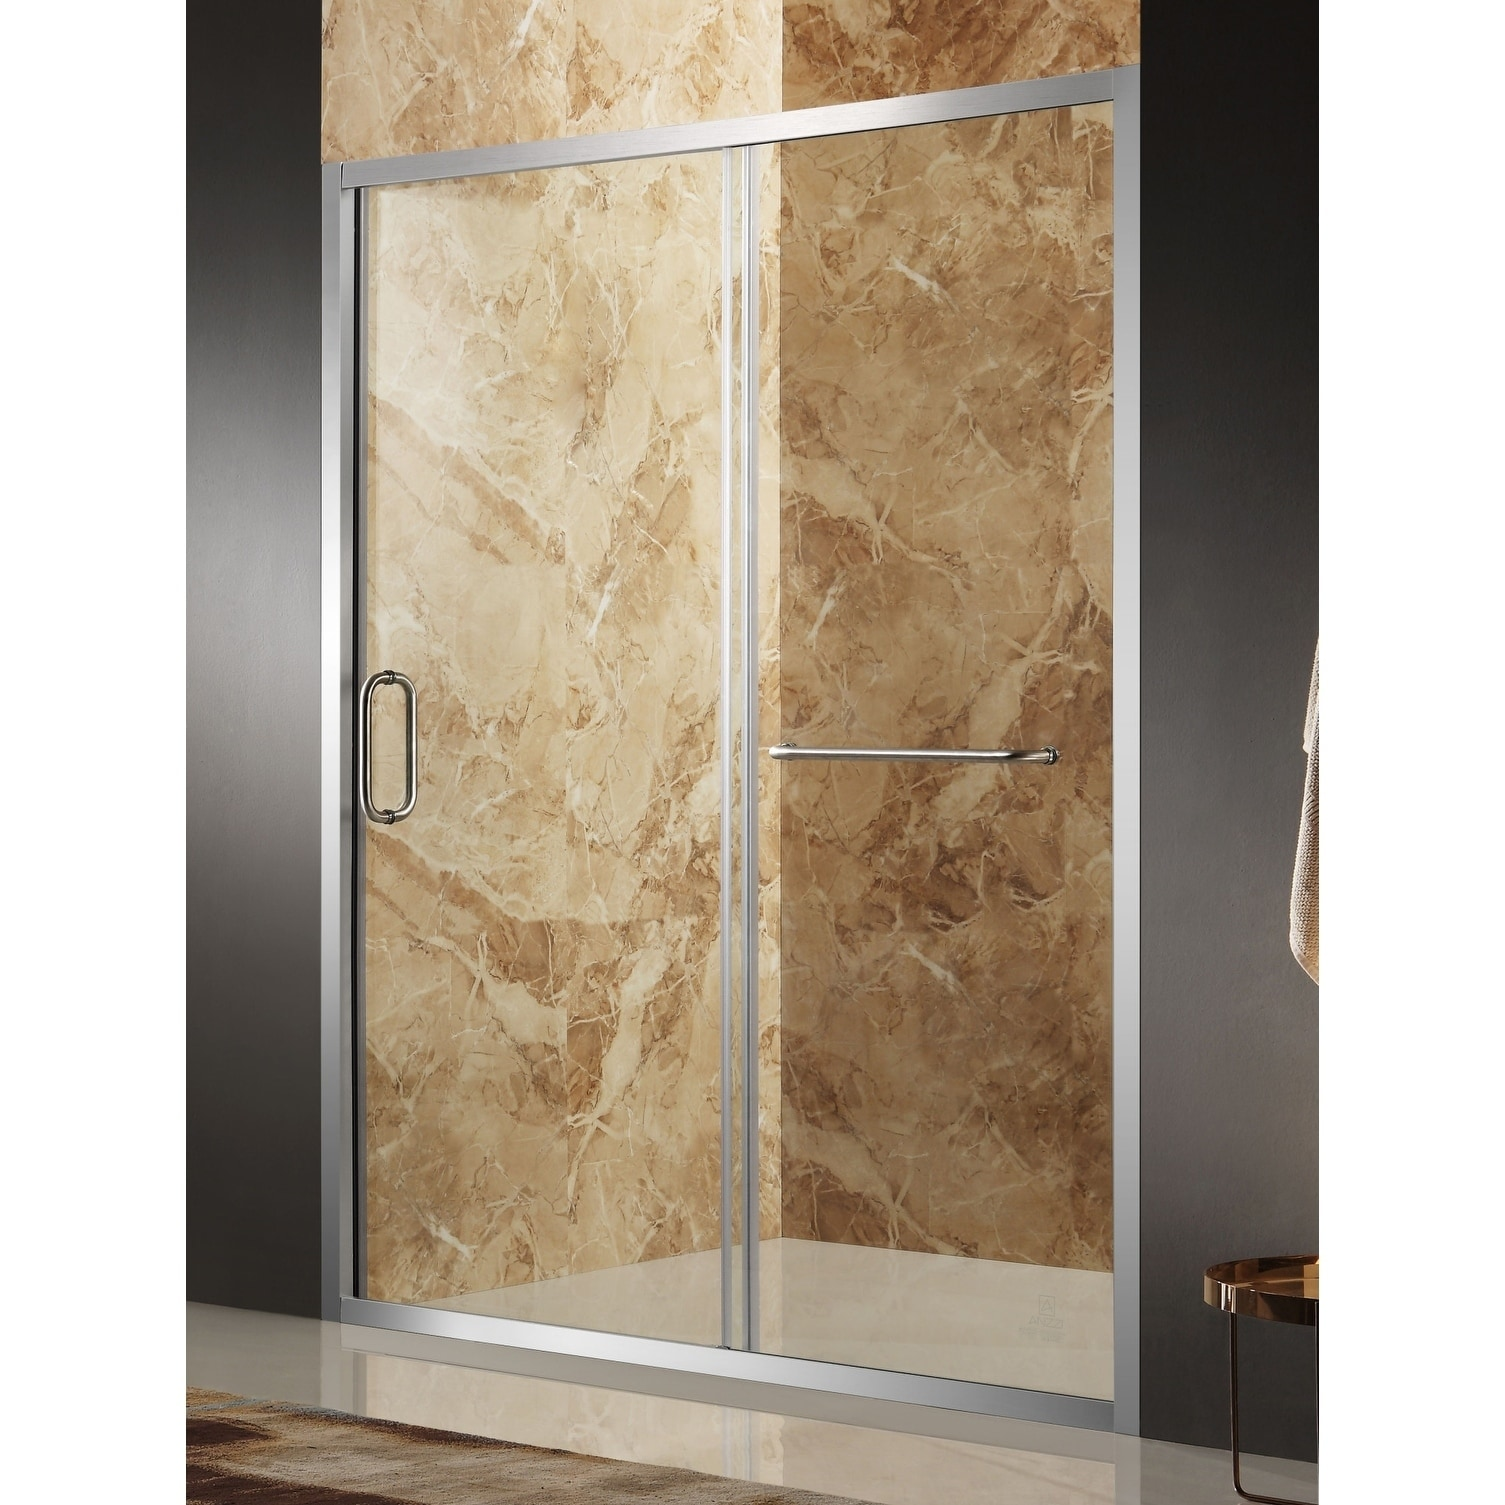 Anzzi Regent 48 X 72 In Framed Sliding Shower Door In Brushed